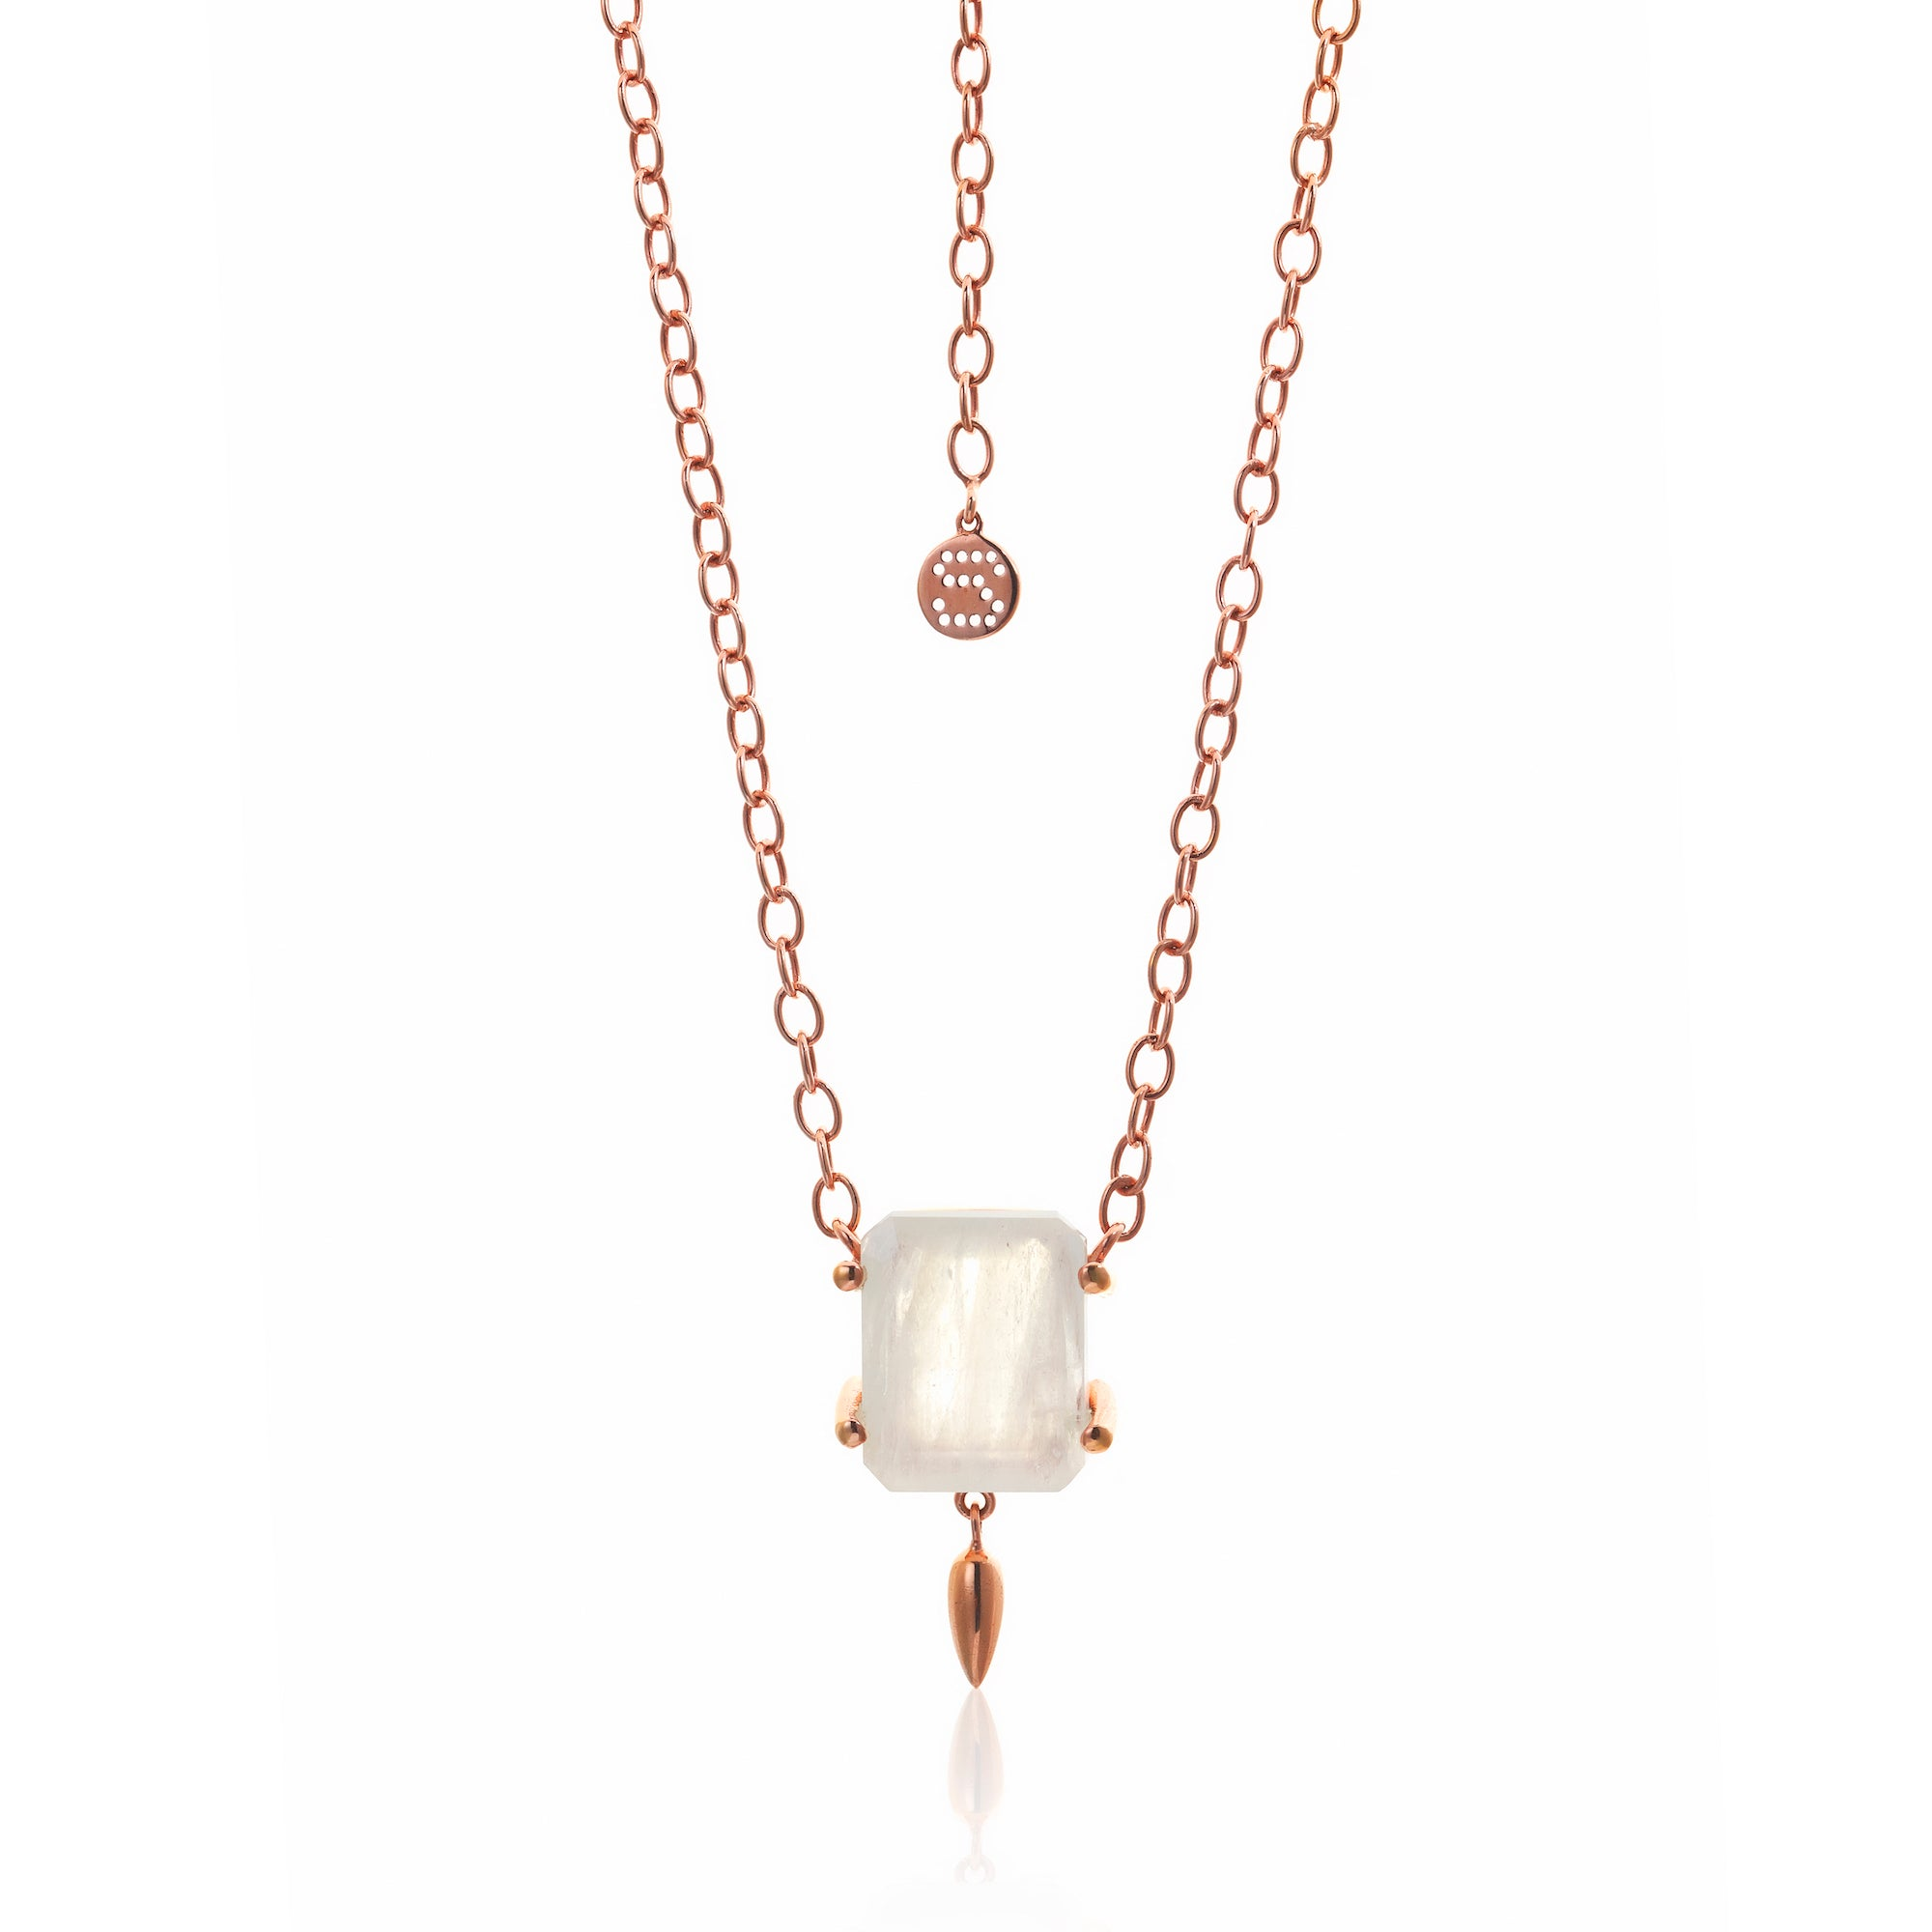 Silk&Steel Jewellery Prima Donna Moonstone and Rose Gold Necklace from La Dolce Vita Collection